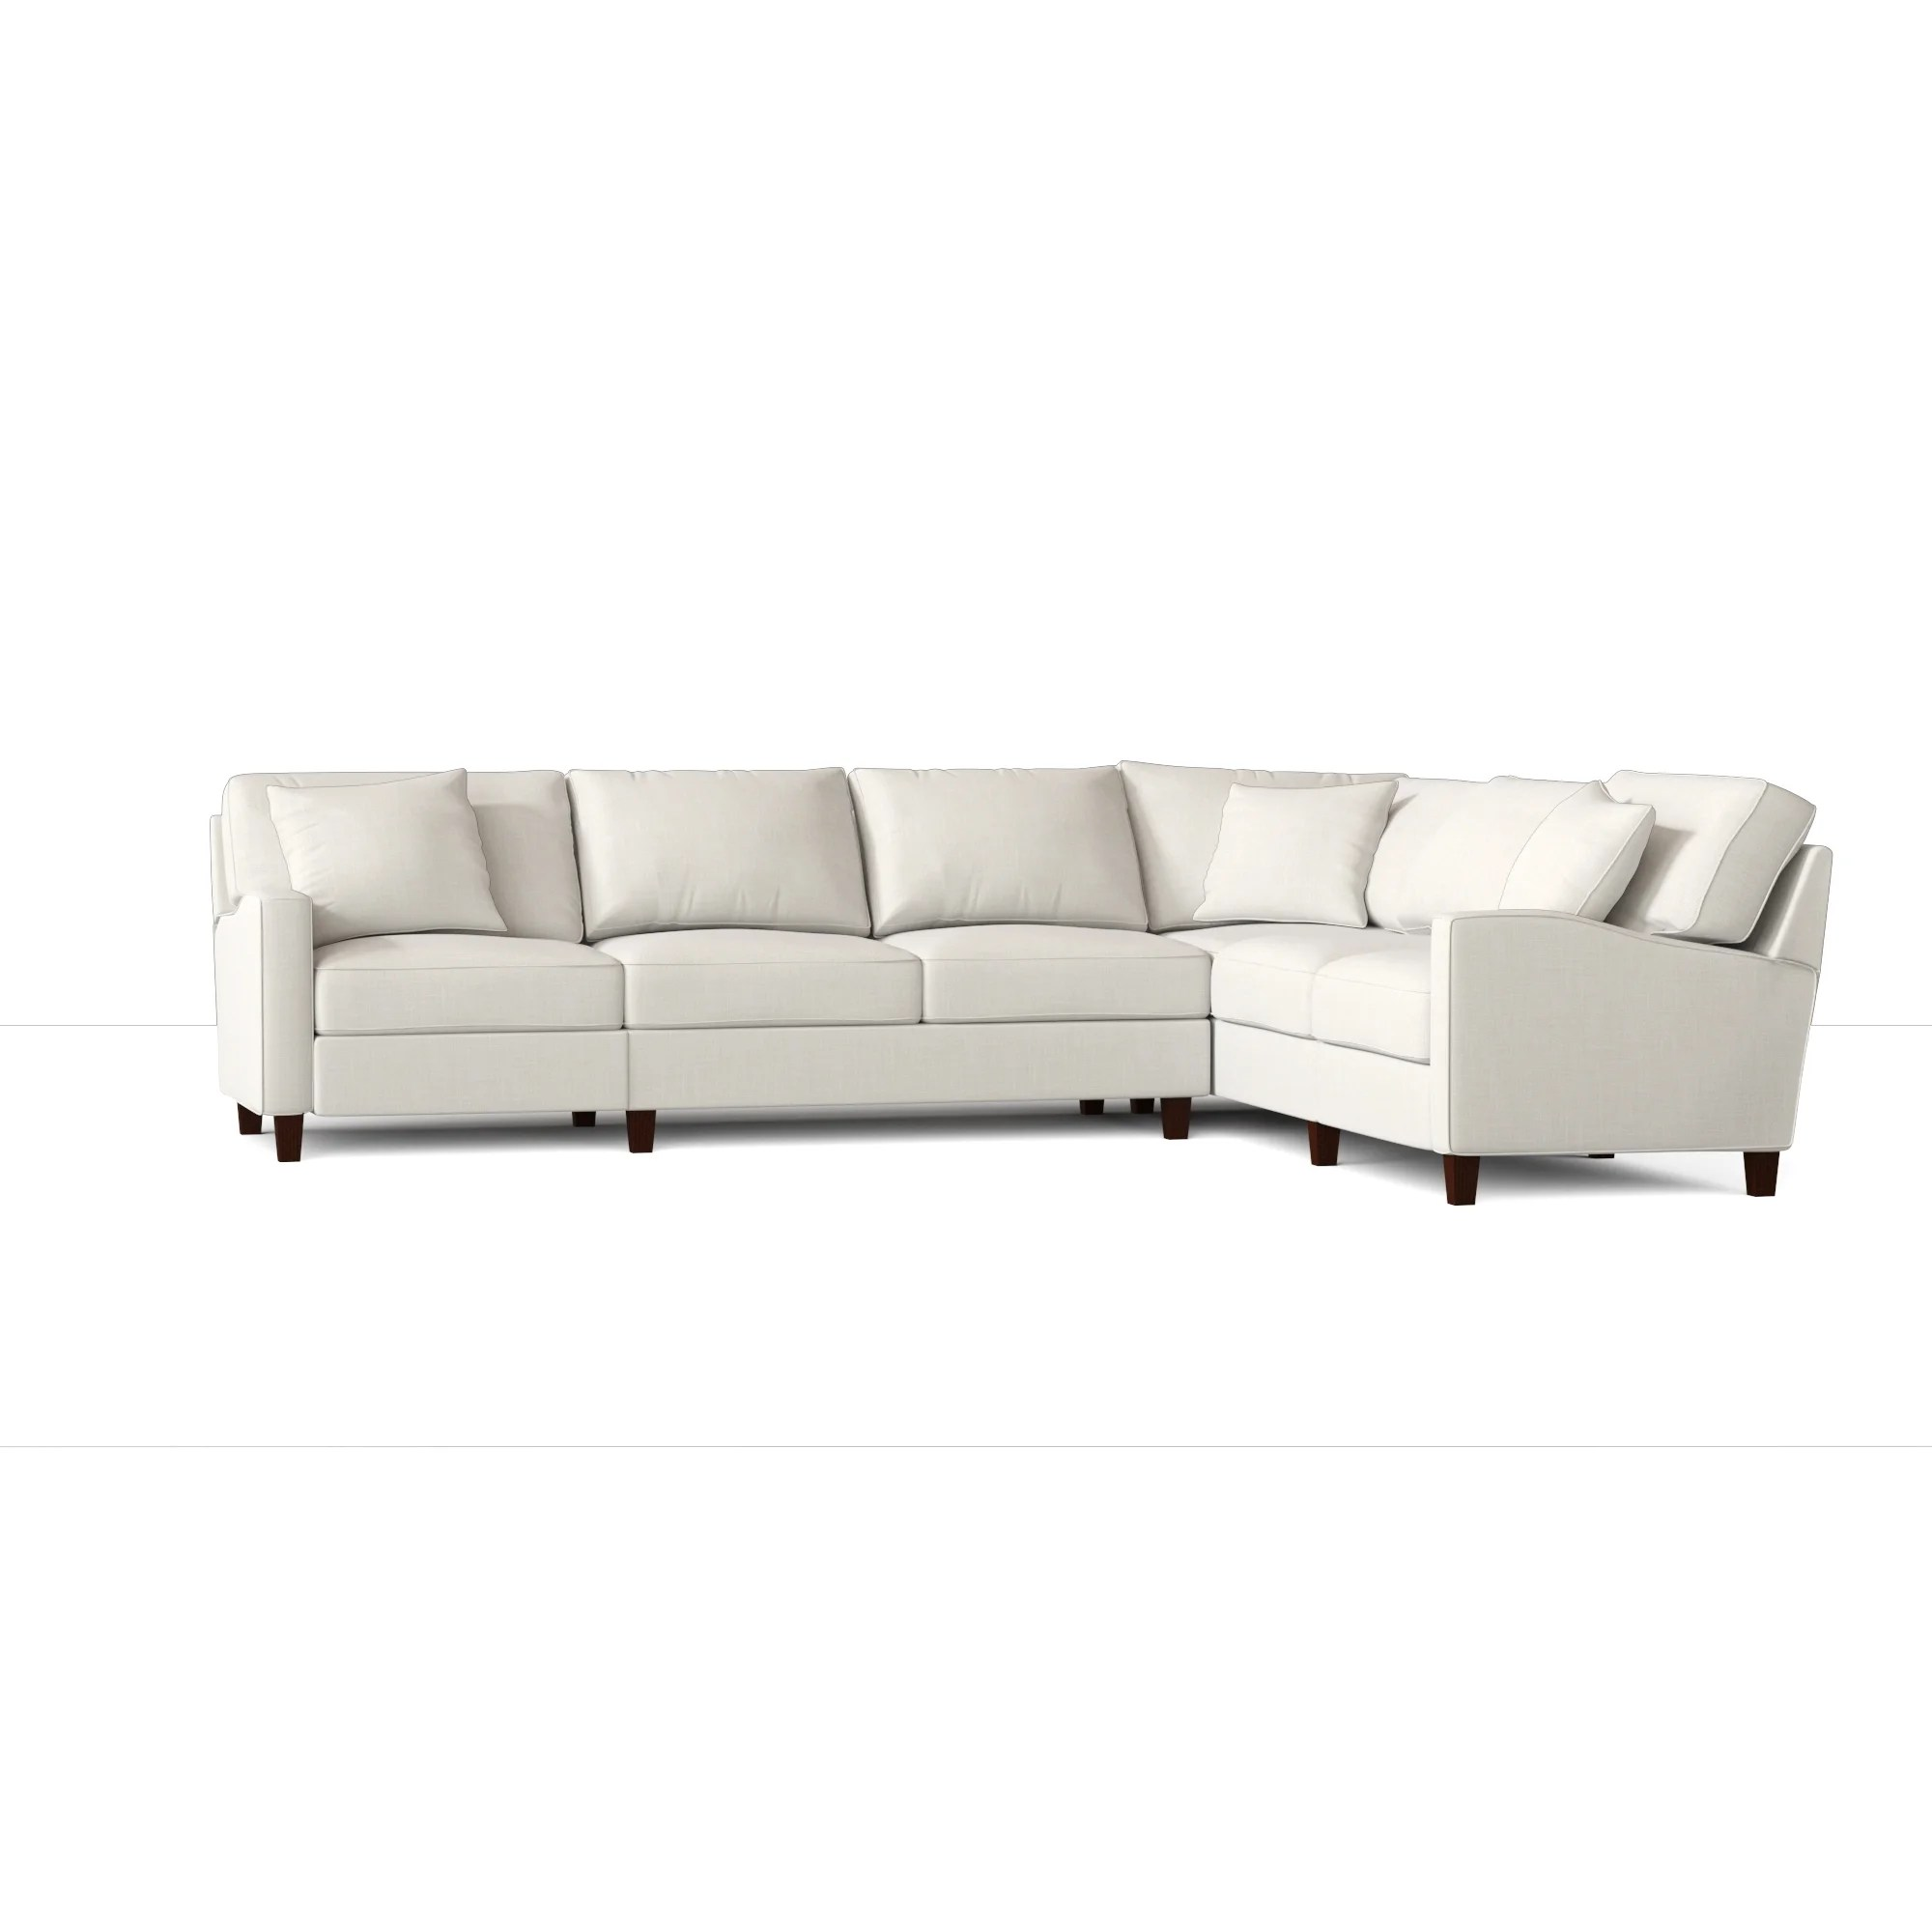 Sectionals Sectional Sofas Couches You Ll Love In 2021 Wayfair